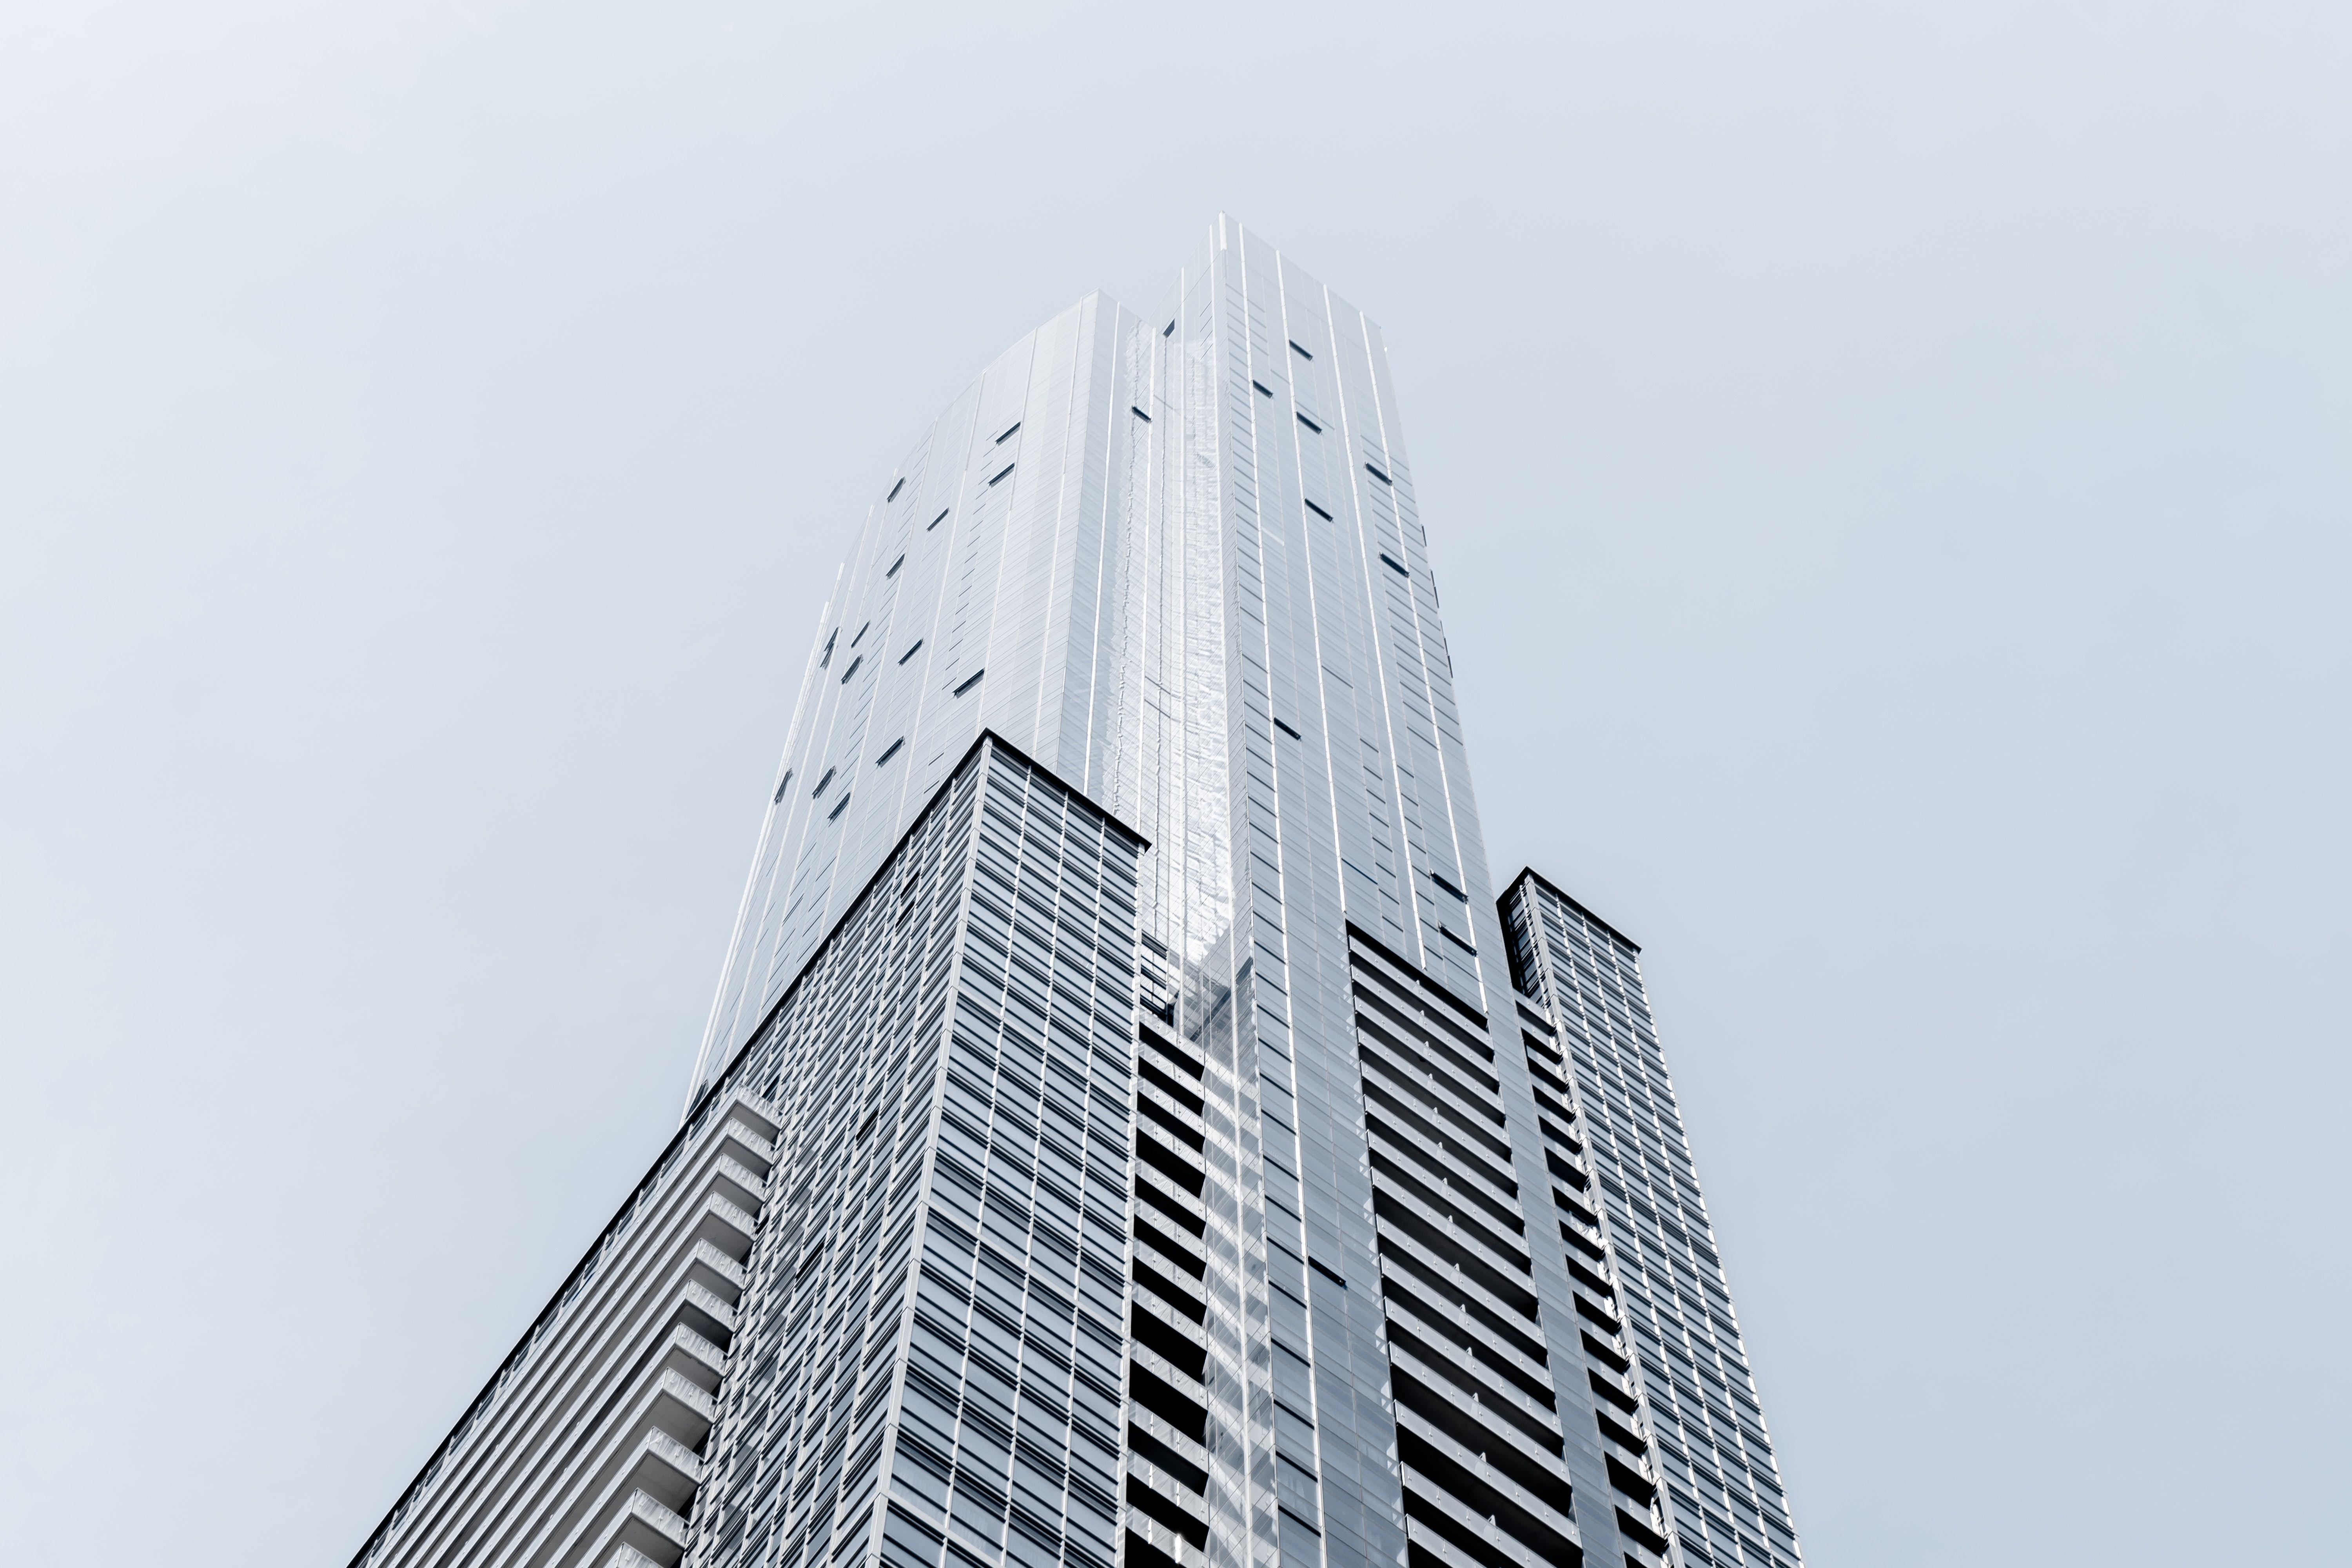 Low Angle Photography of Silver High Rise Building